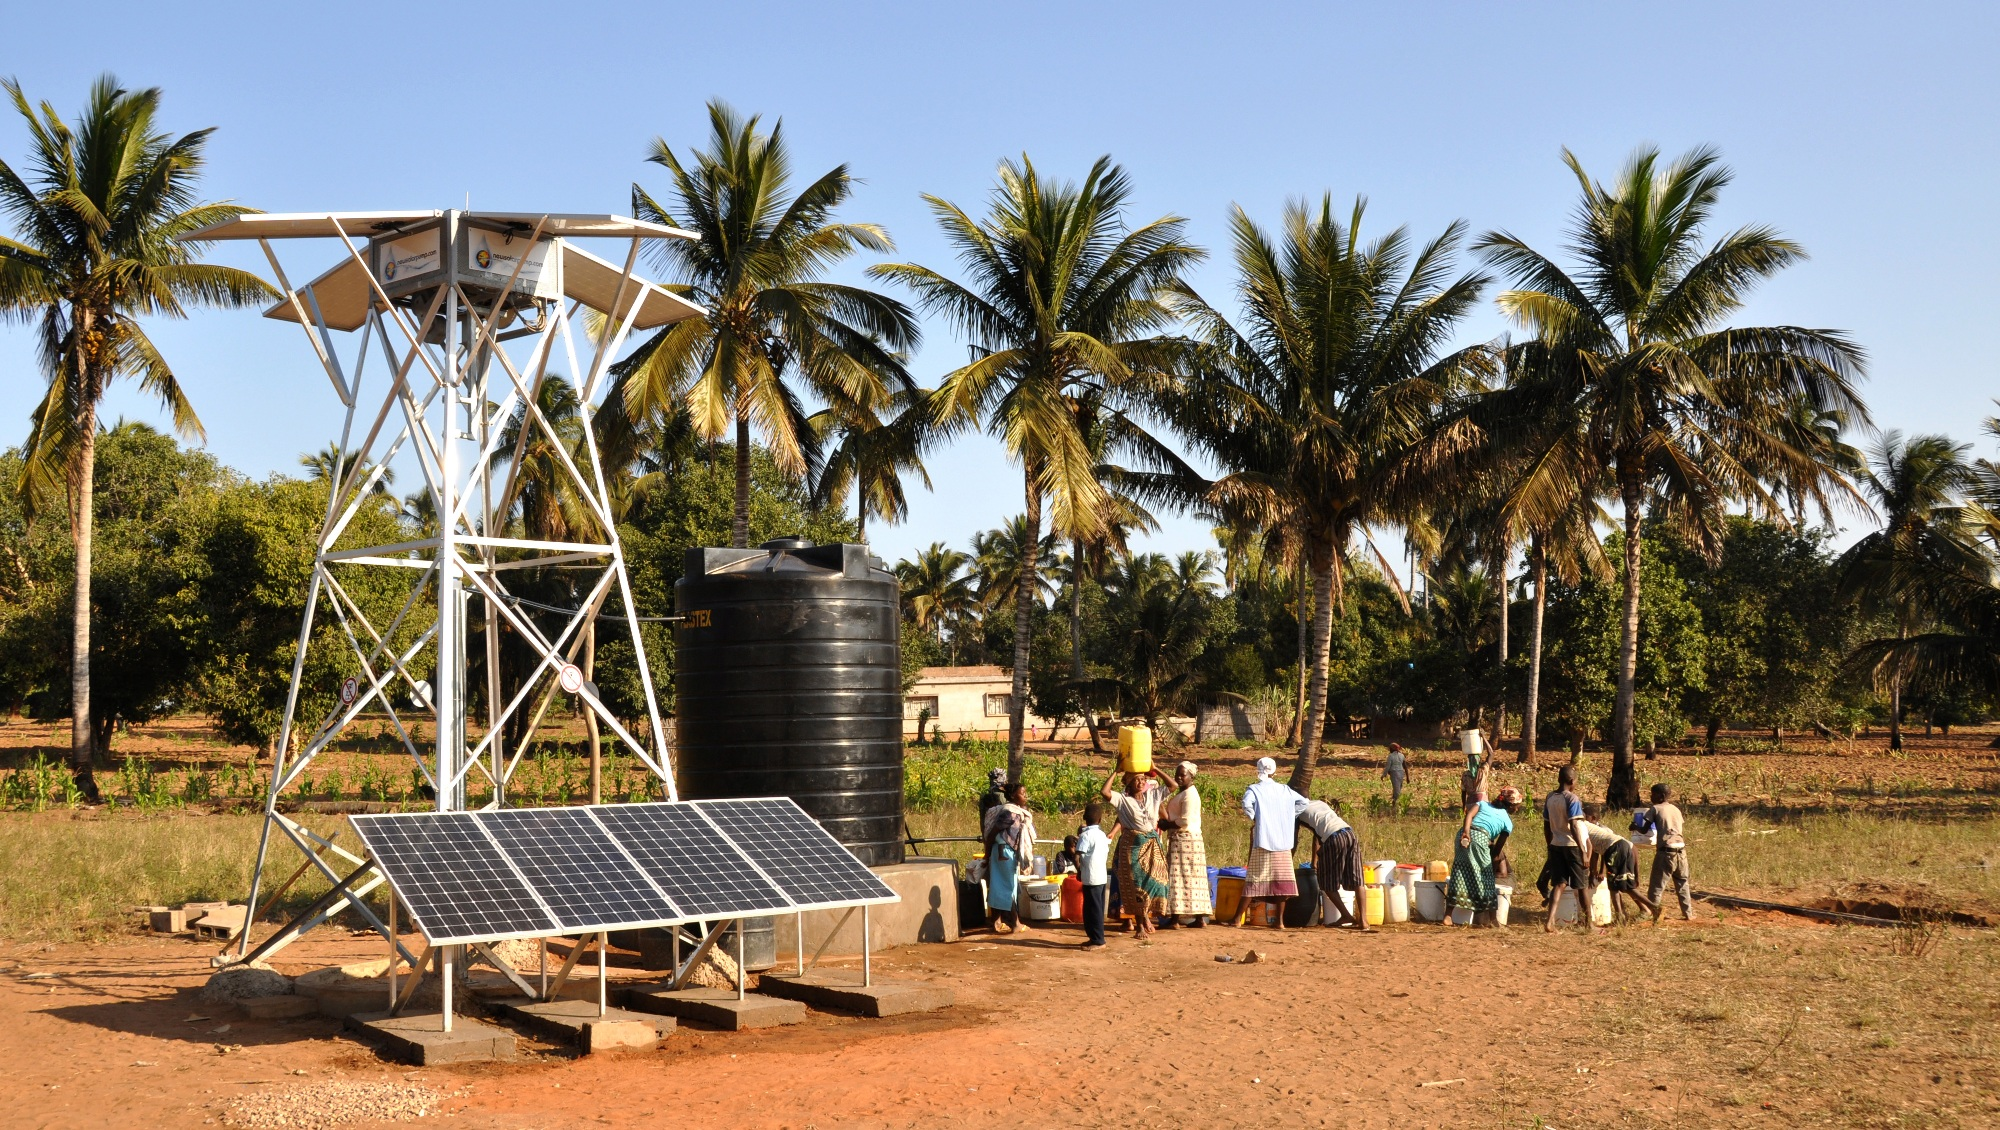 Diy Solar Pumps In Africa 171 Awp Network